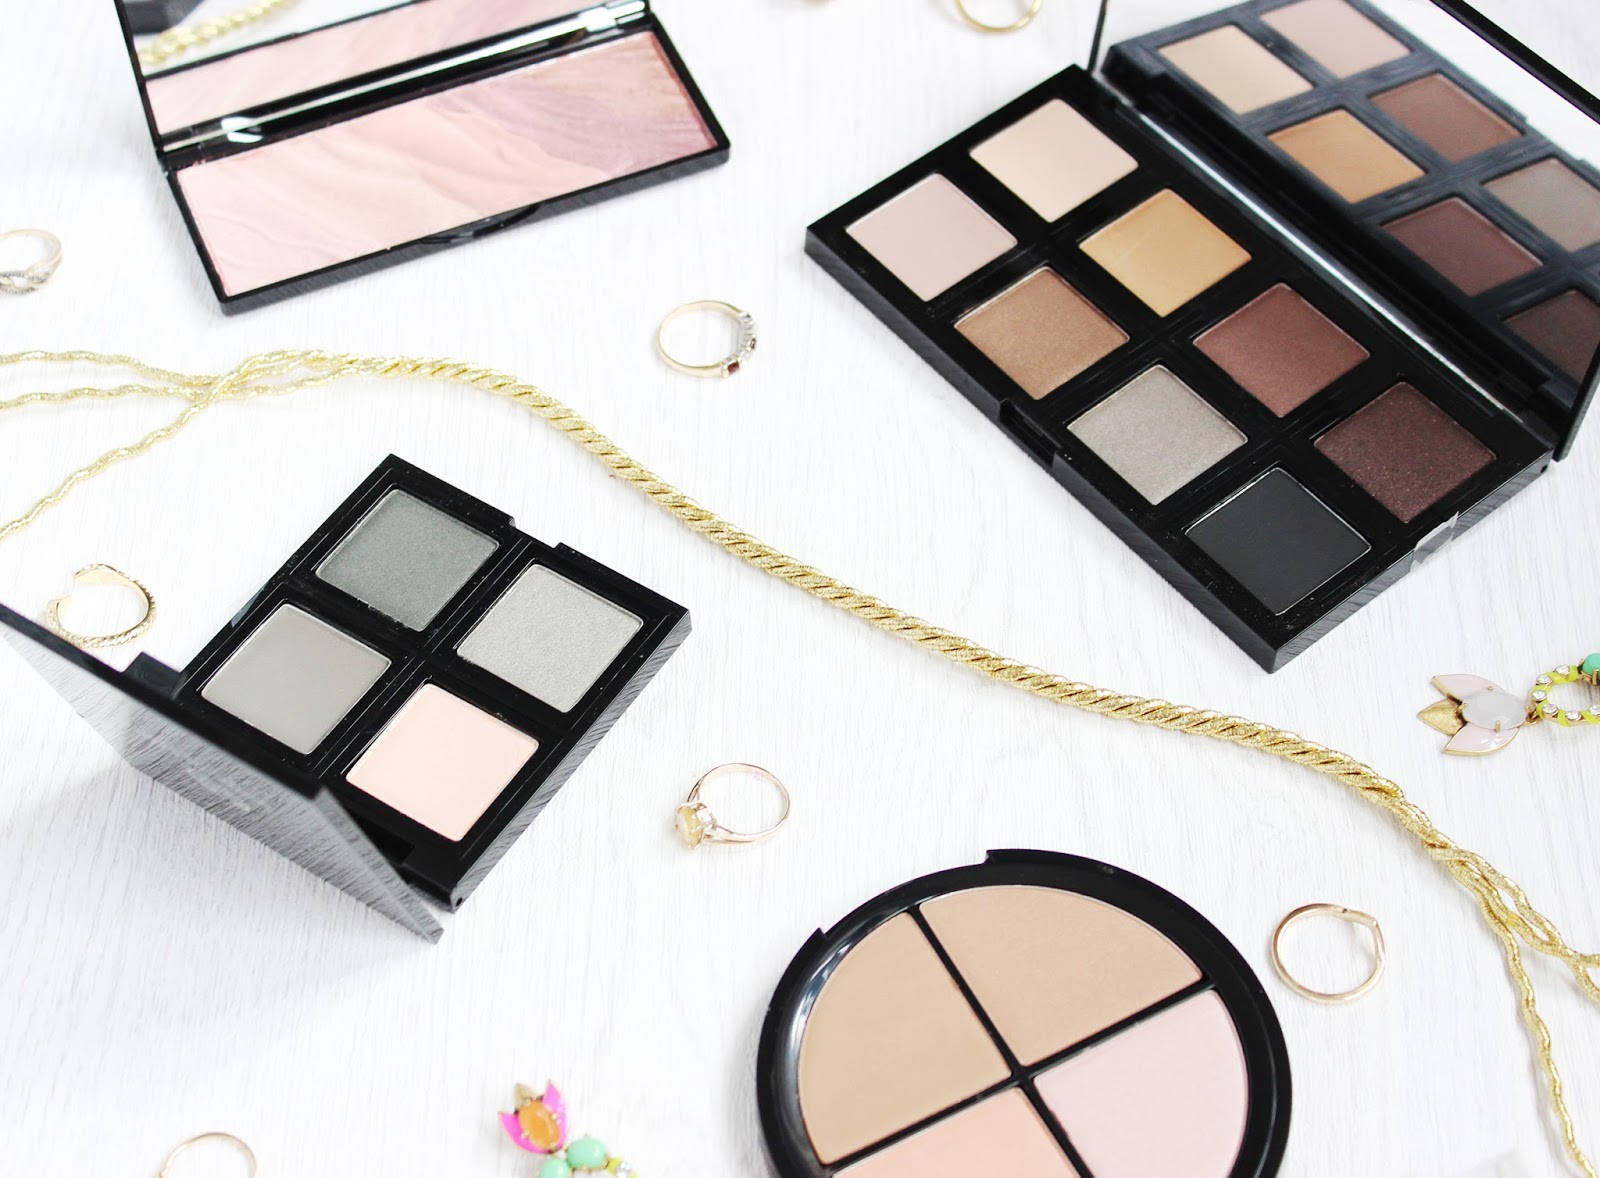 Must-have high street palettes from GOSH, The Body Shop and MUA